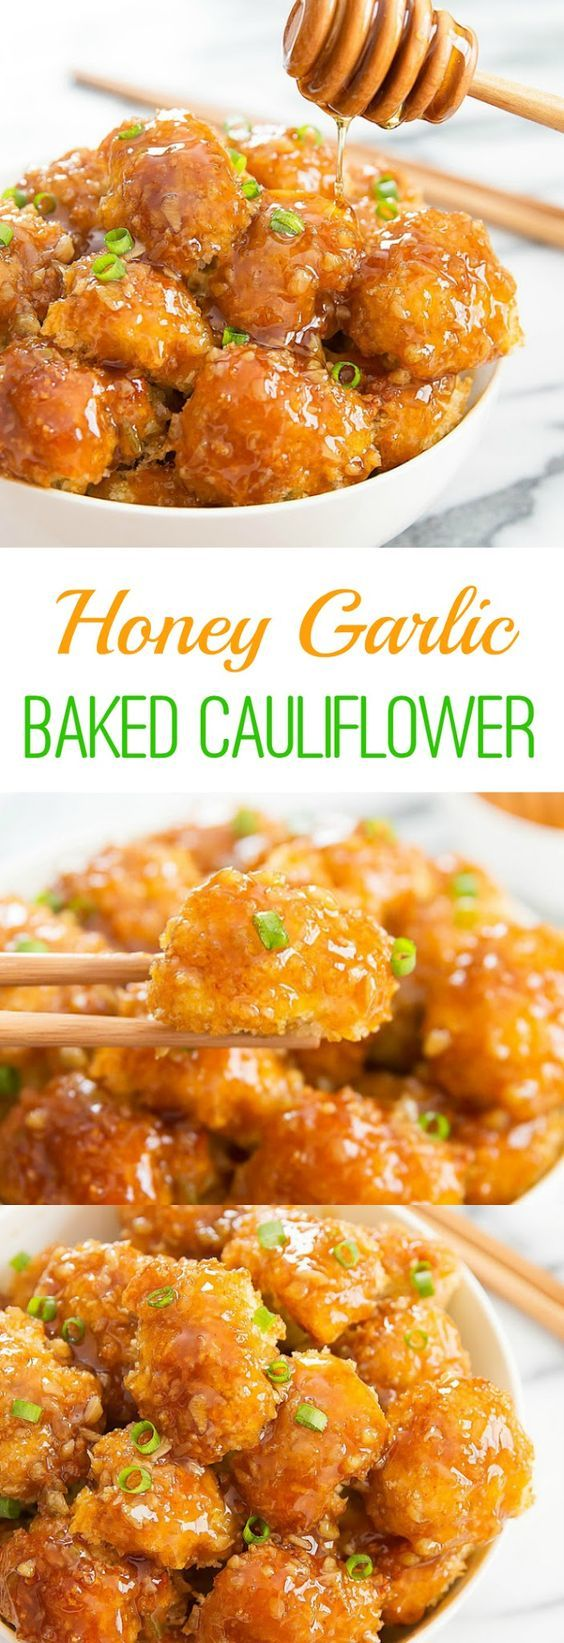 Honey Garlic Baked Cauliflower. An easy and delicious weeknight meal! | Salads & Sides